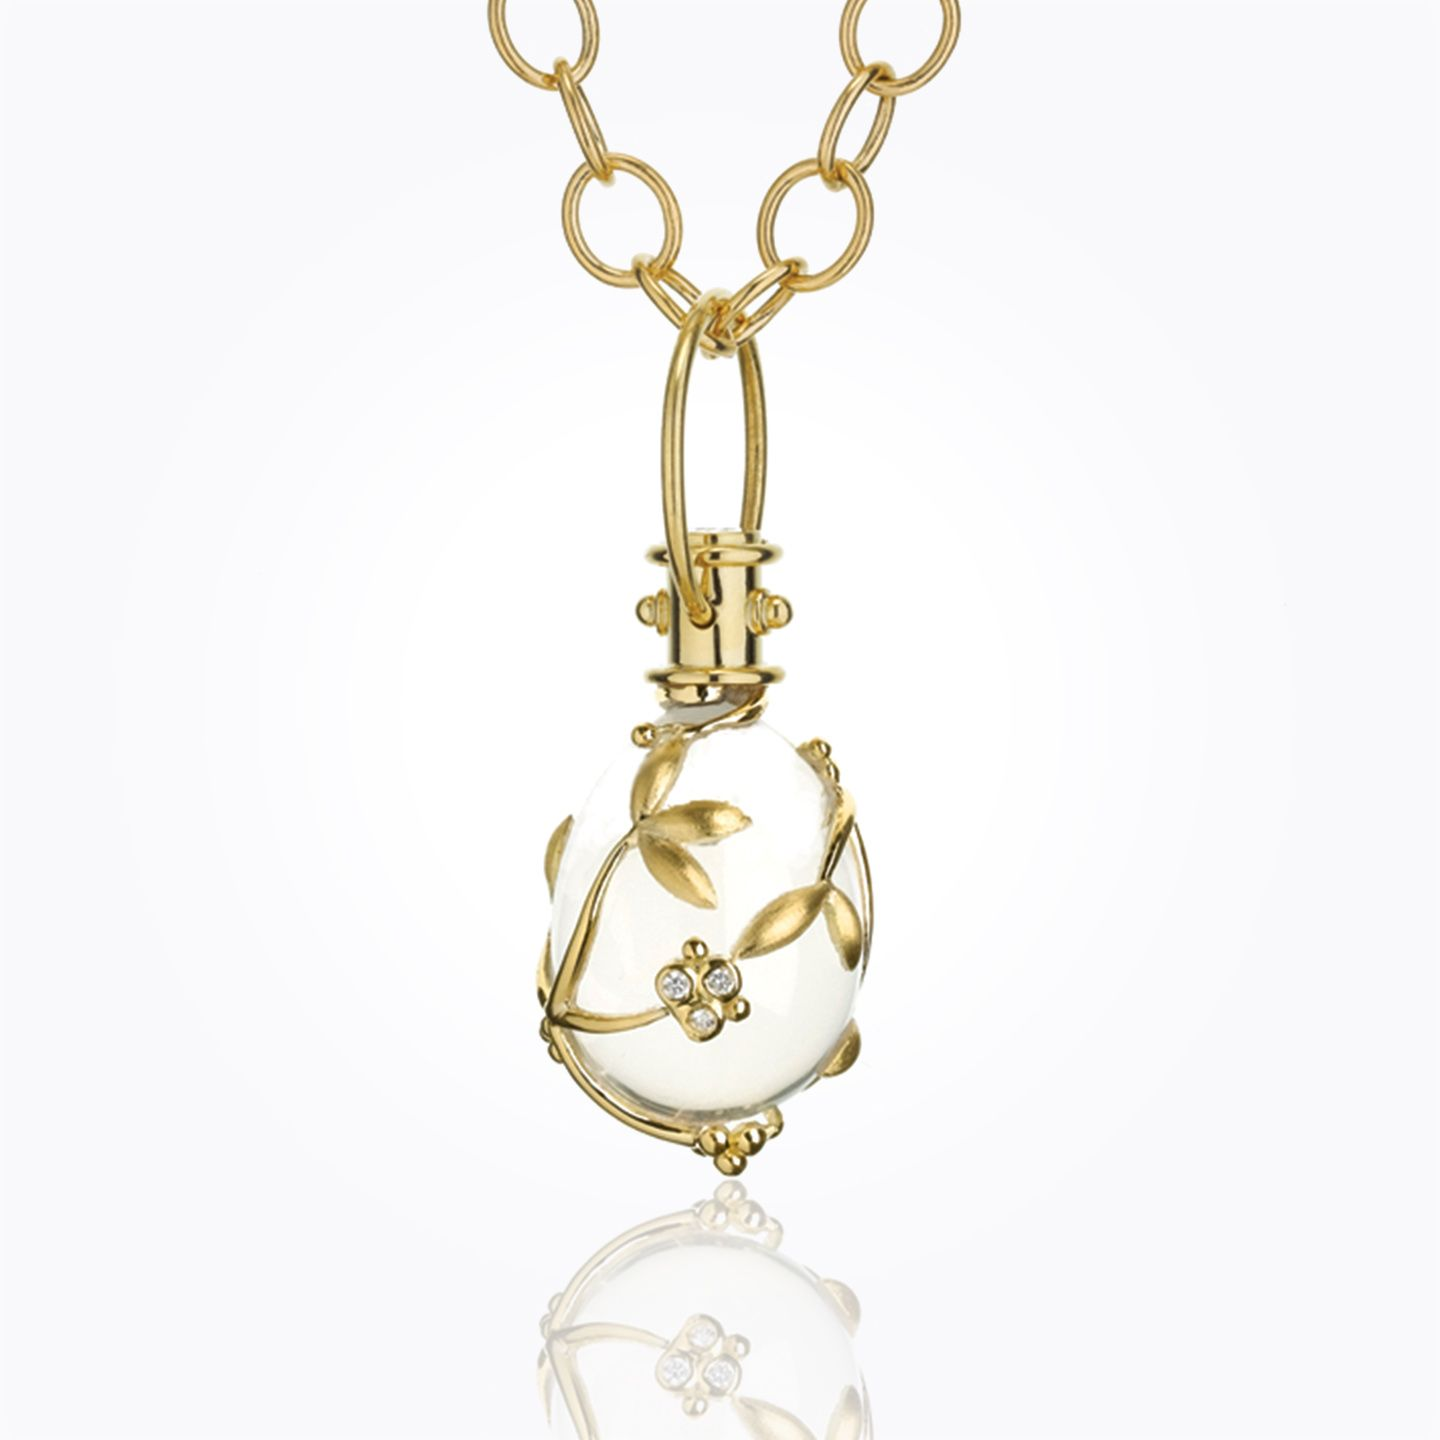 Temple St. Clair 18K Yellow Gold Vine Amulet with Rock Crystal and Diamond - Laura Pearce Ltd.